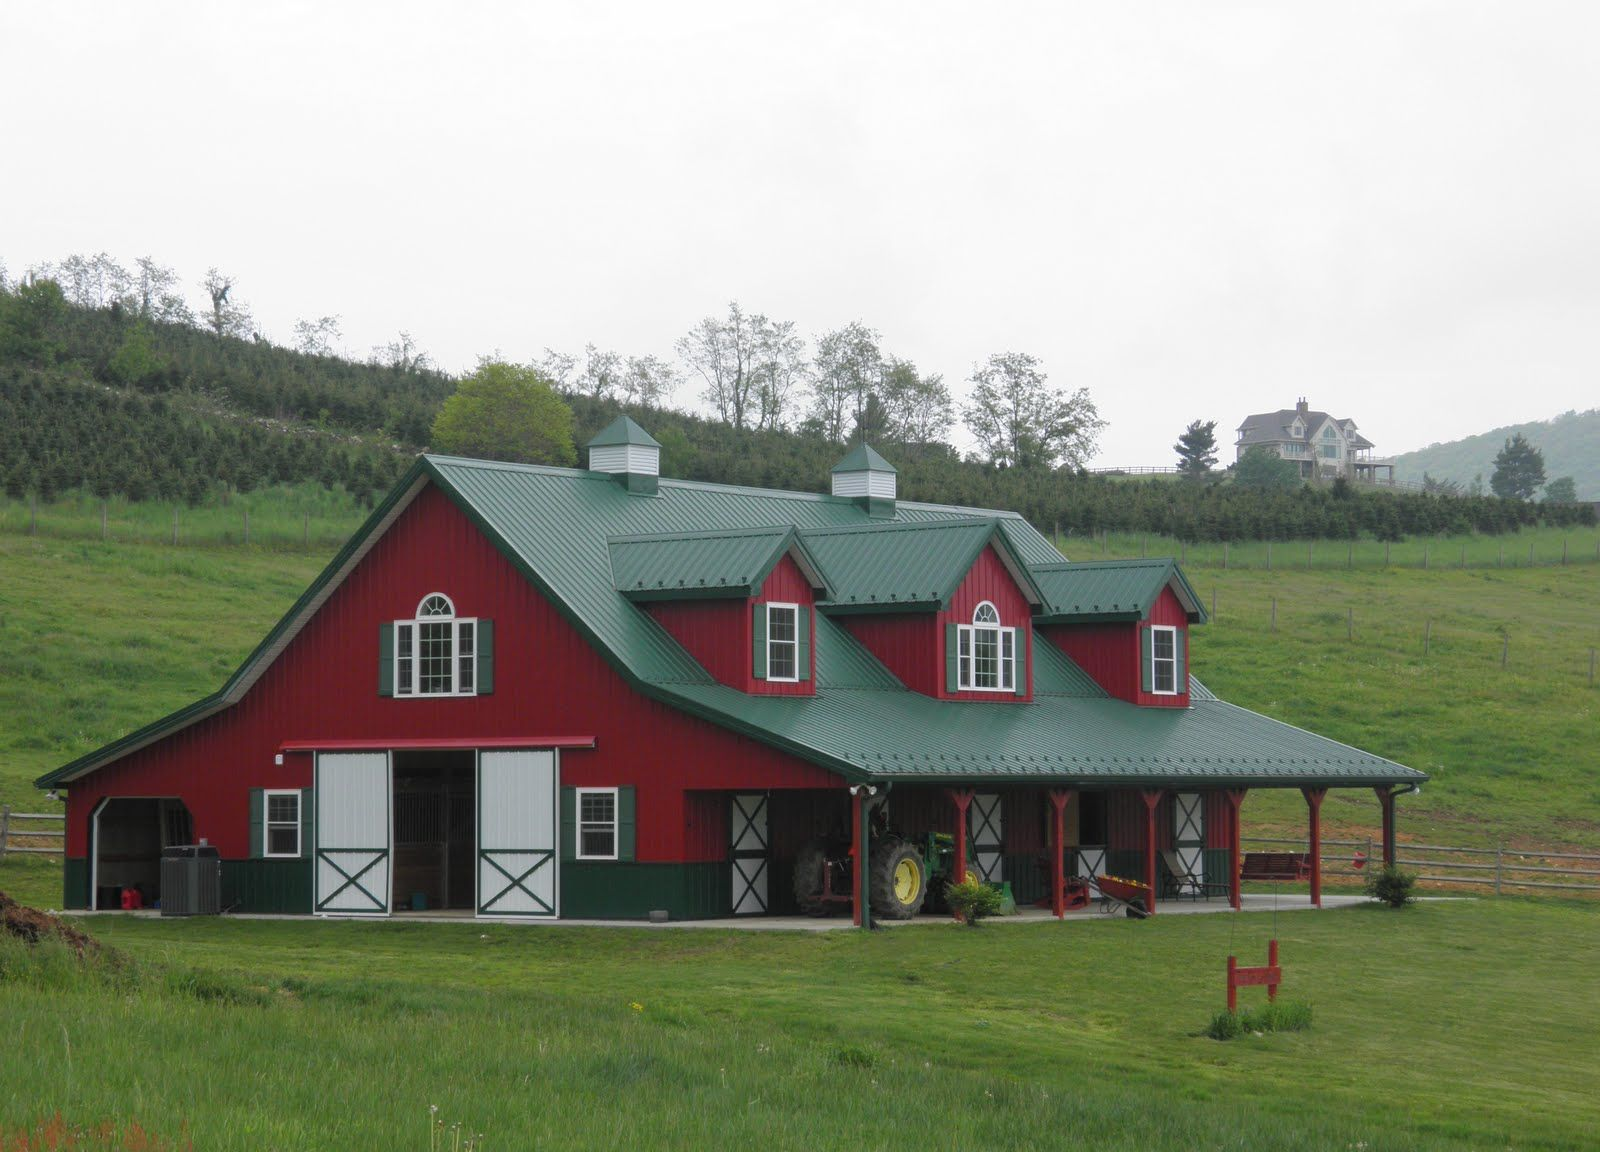 House that looks like red barn images at home in the for Metal home designs